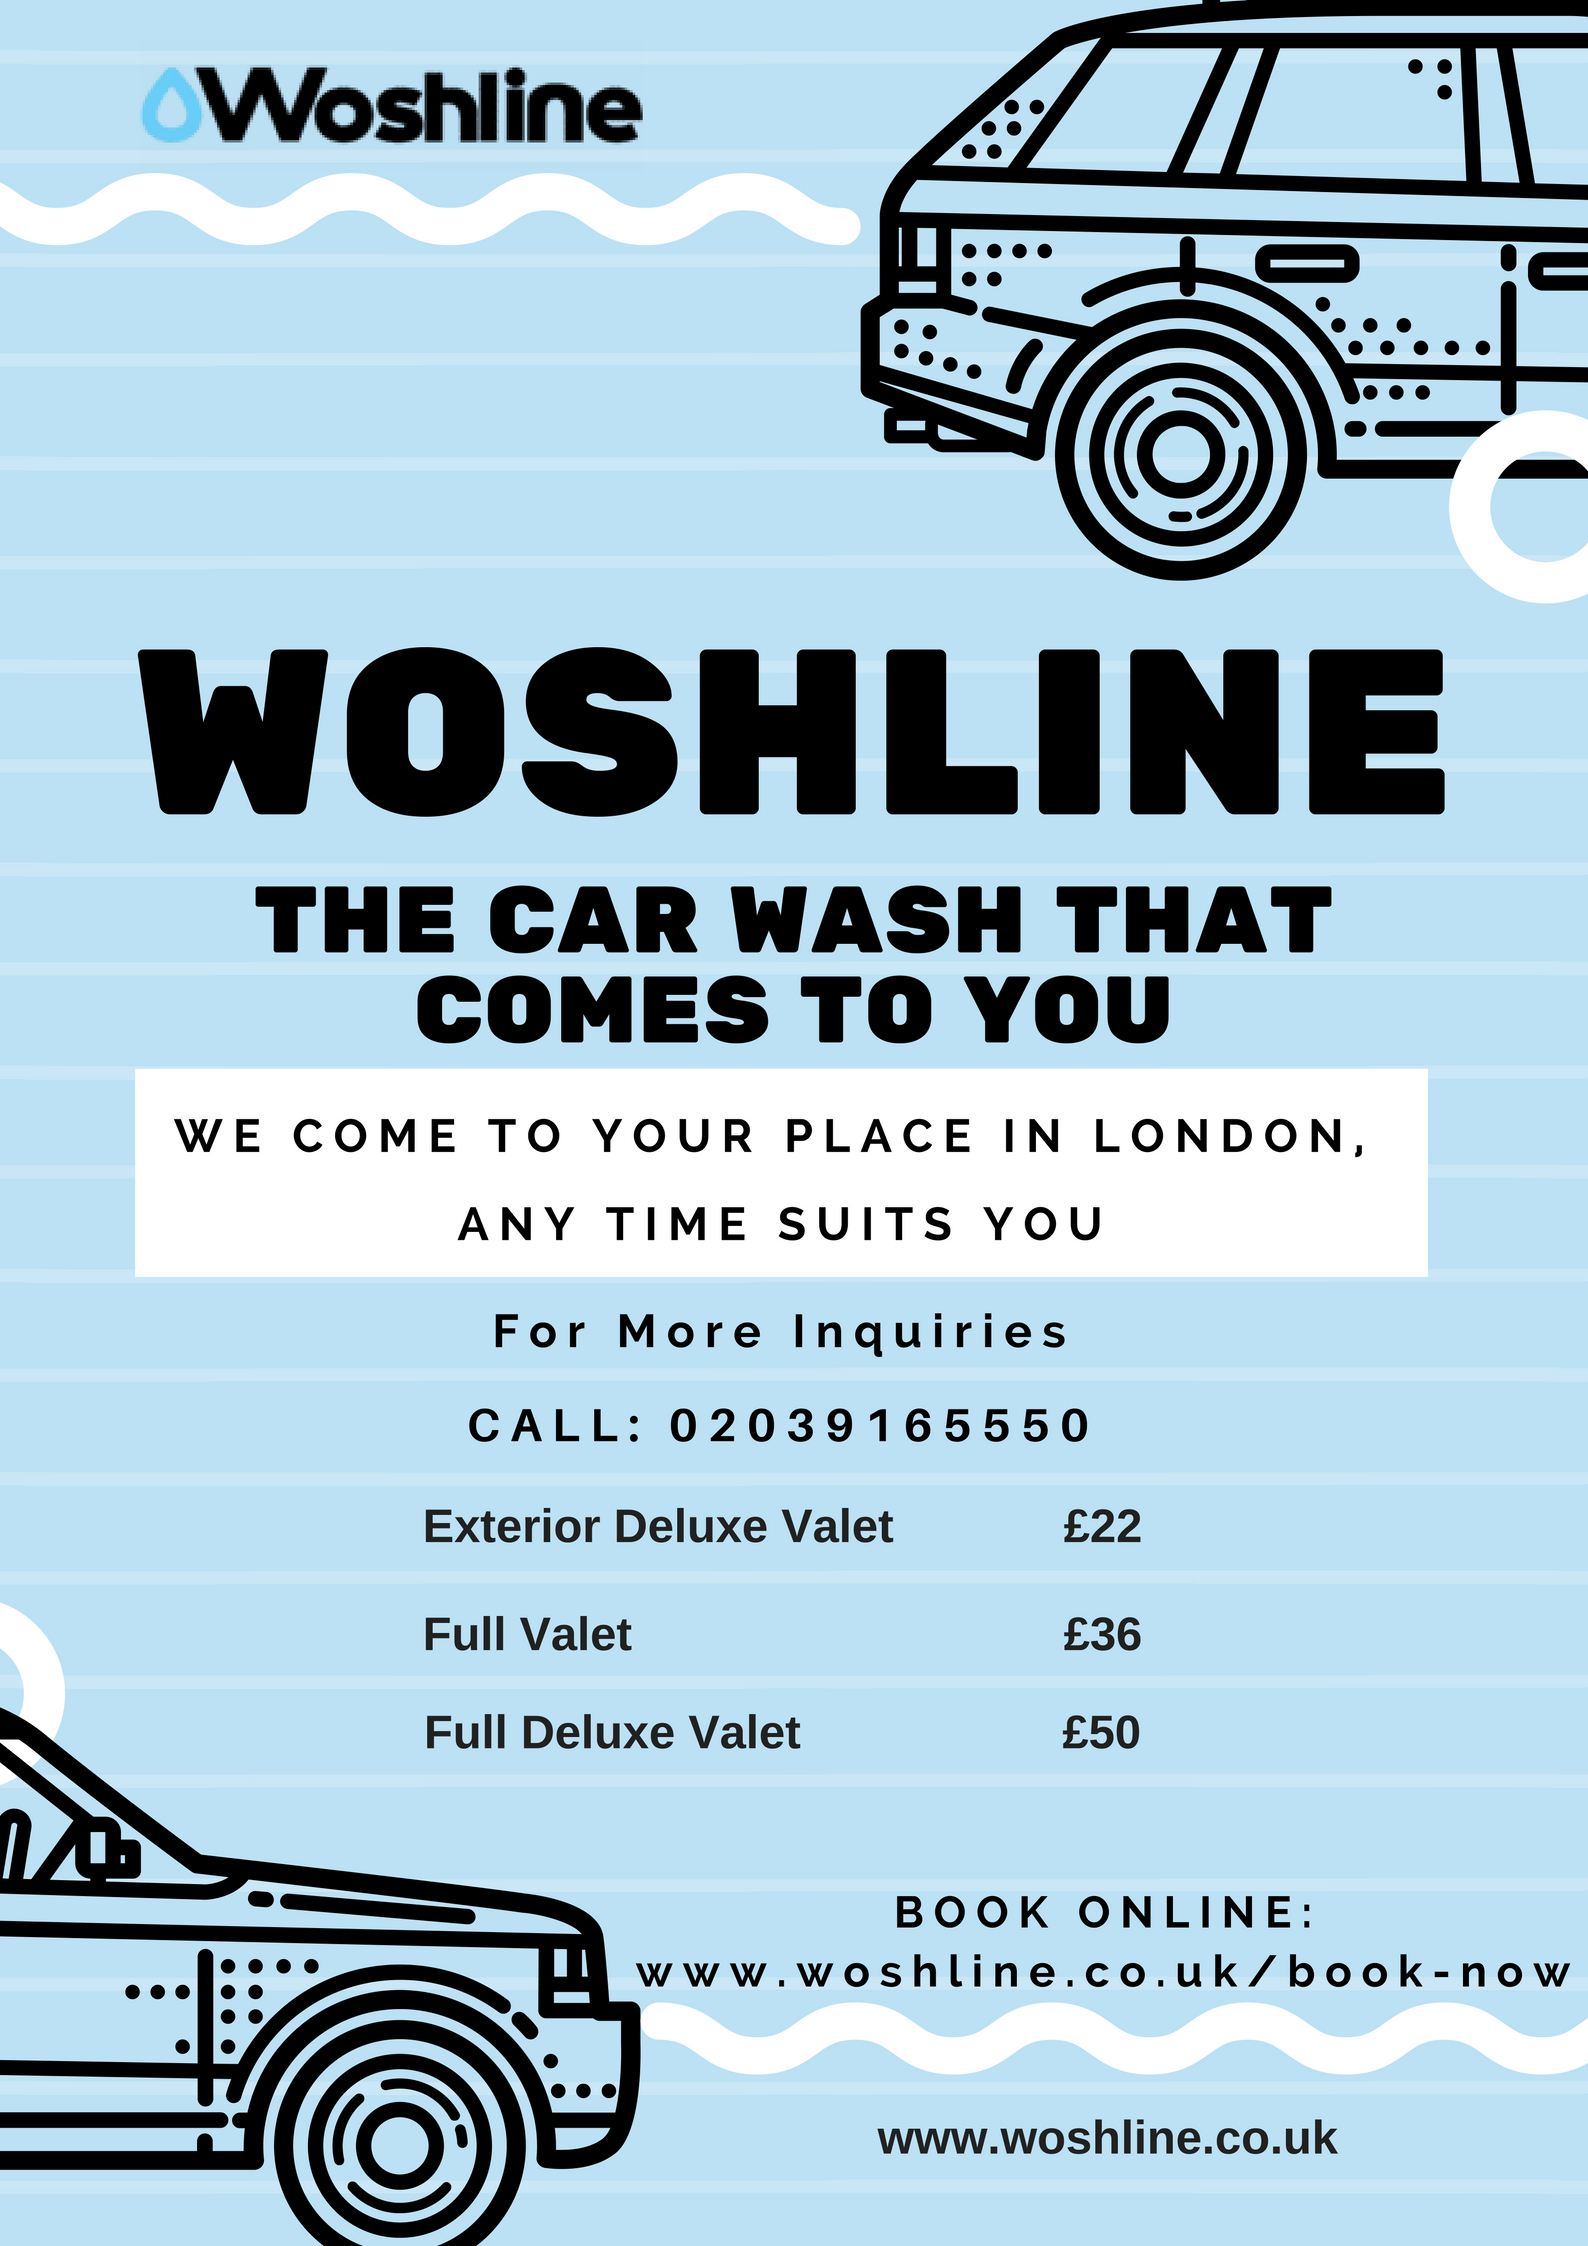 Woshline – Mobile Car Wash Price in London